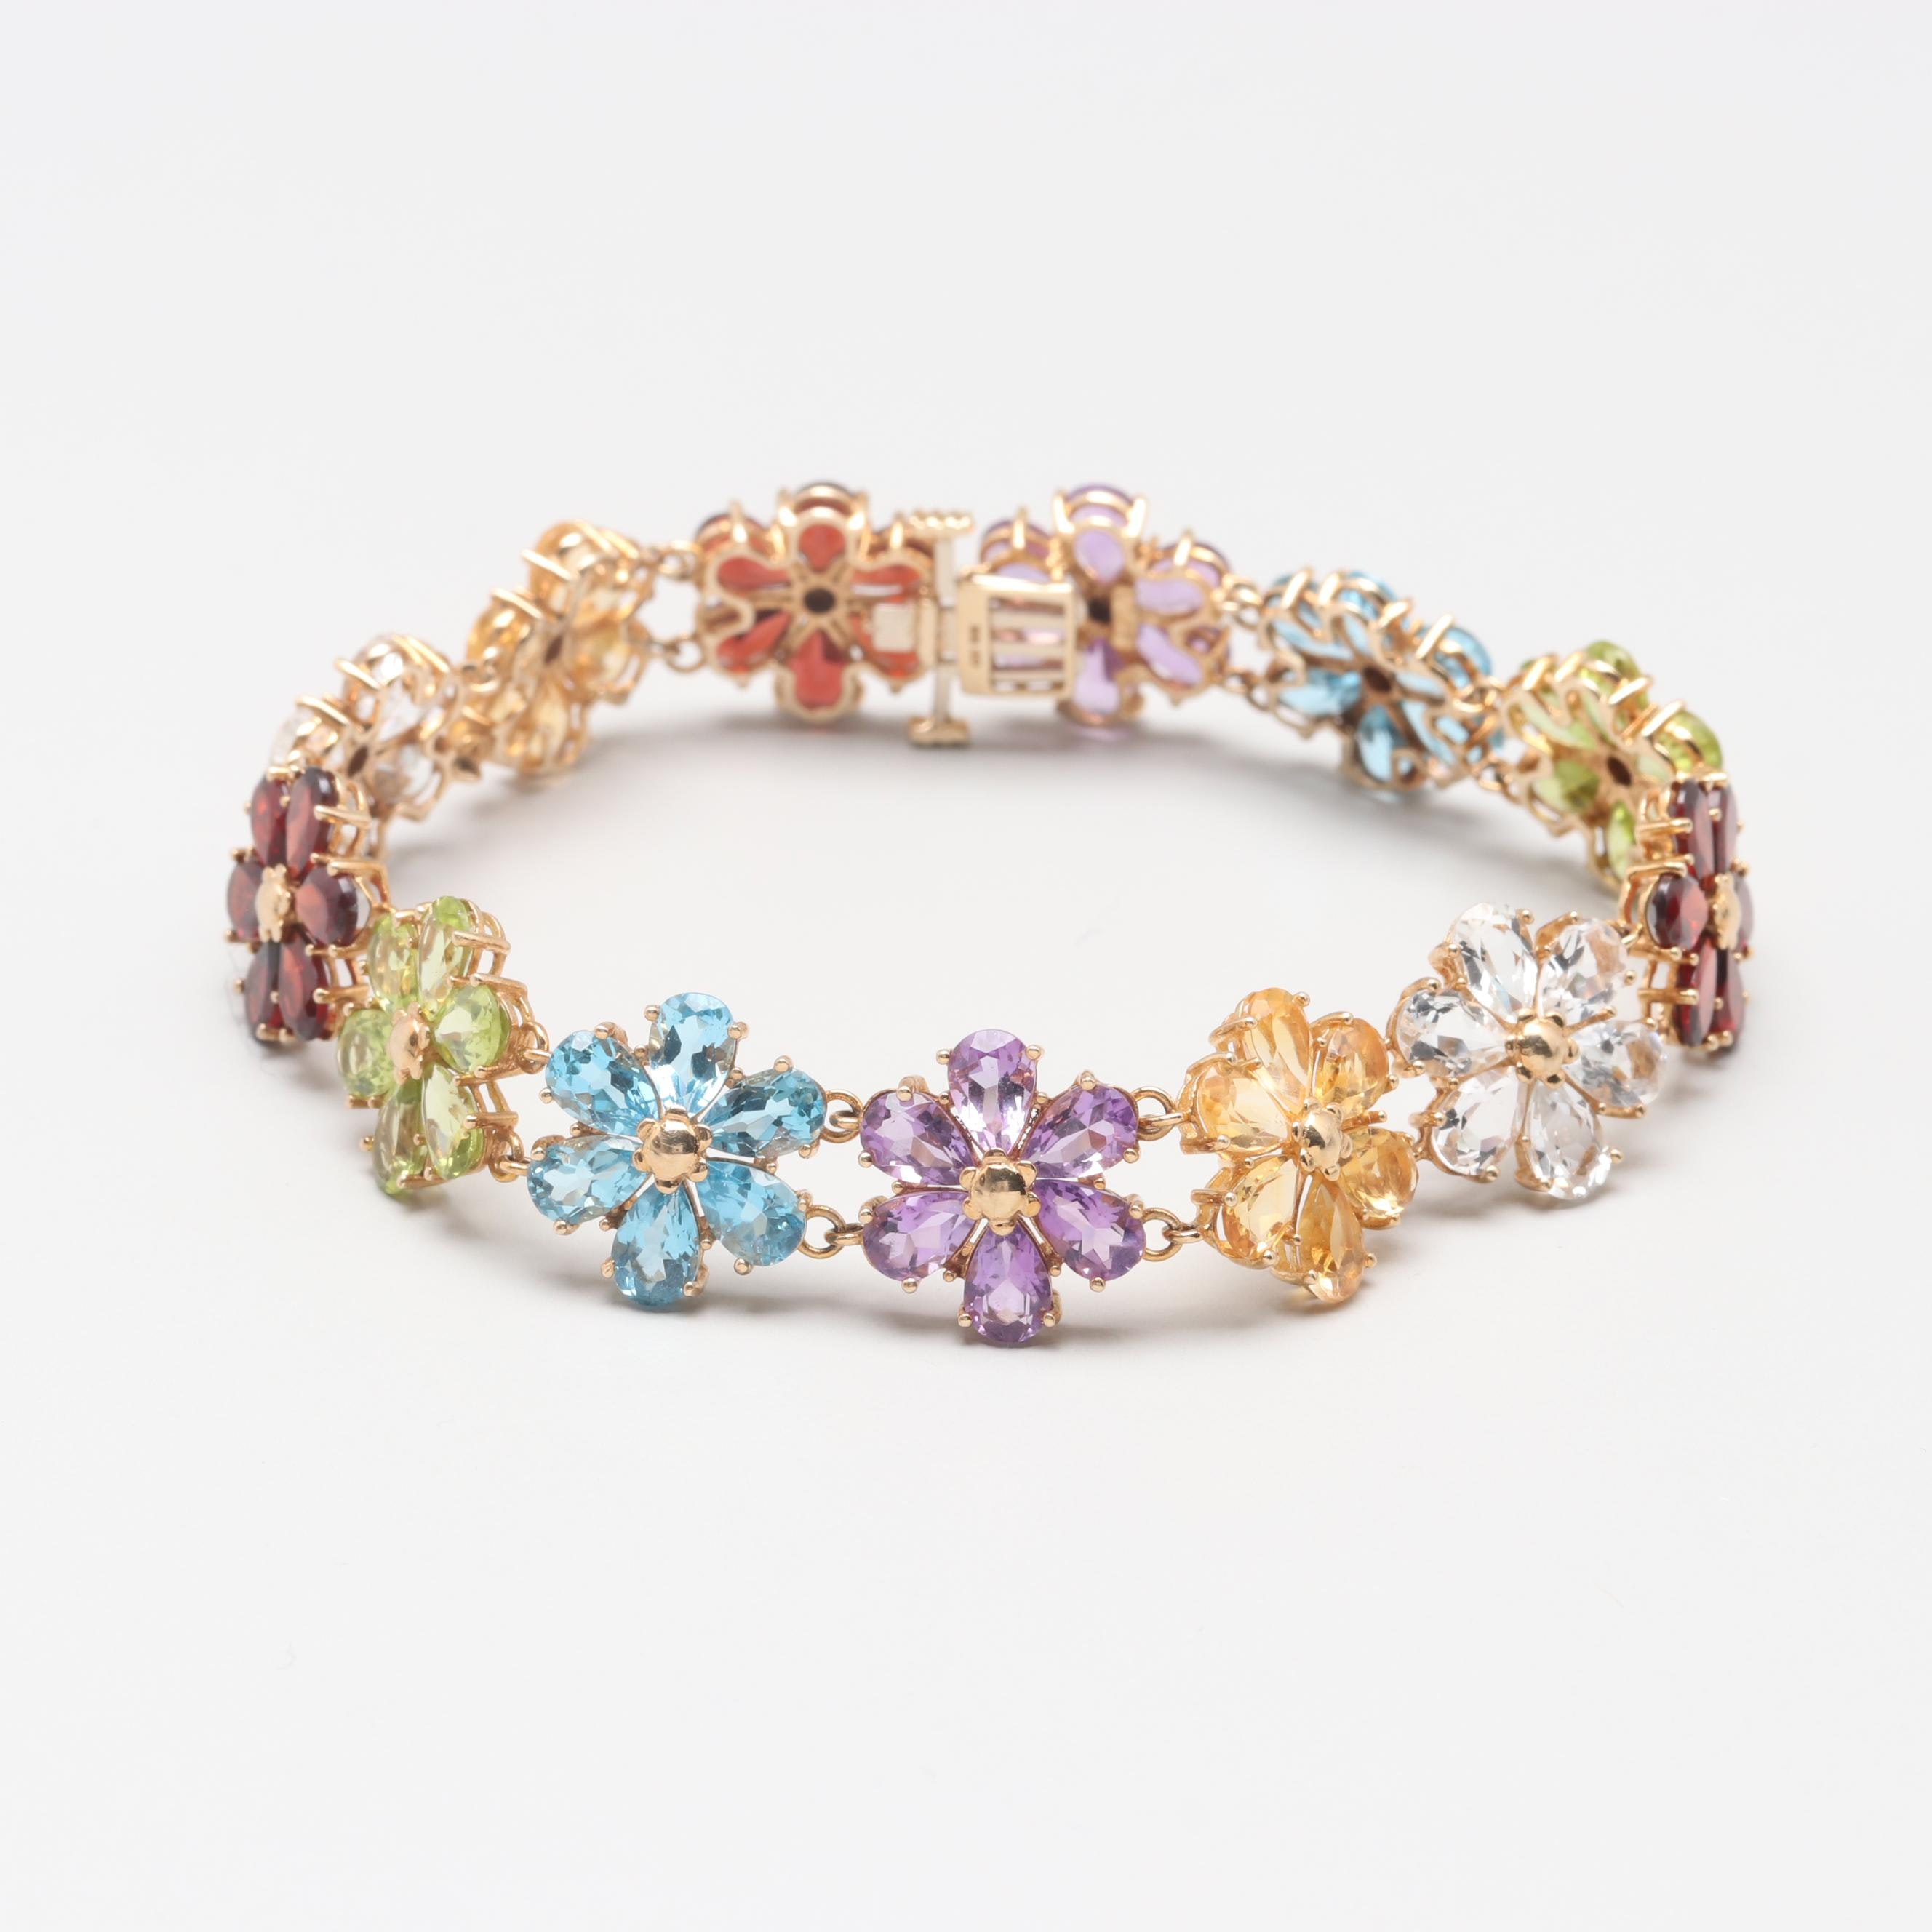 10K Yellow Gold Gemstone Flower Bracelet